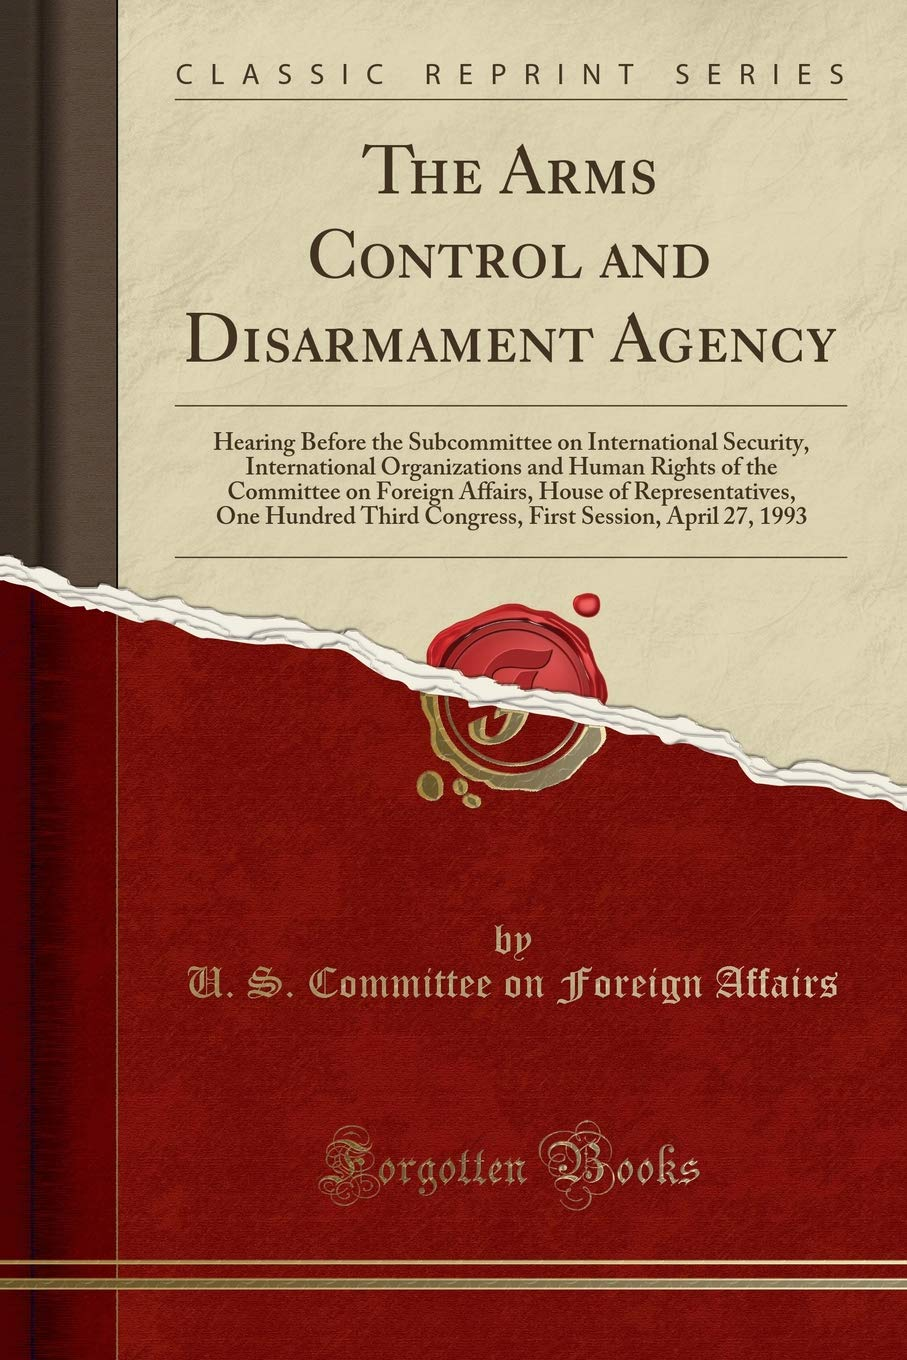 Arms Control and Disarmament Agency